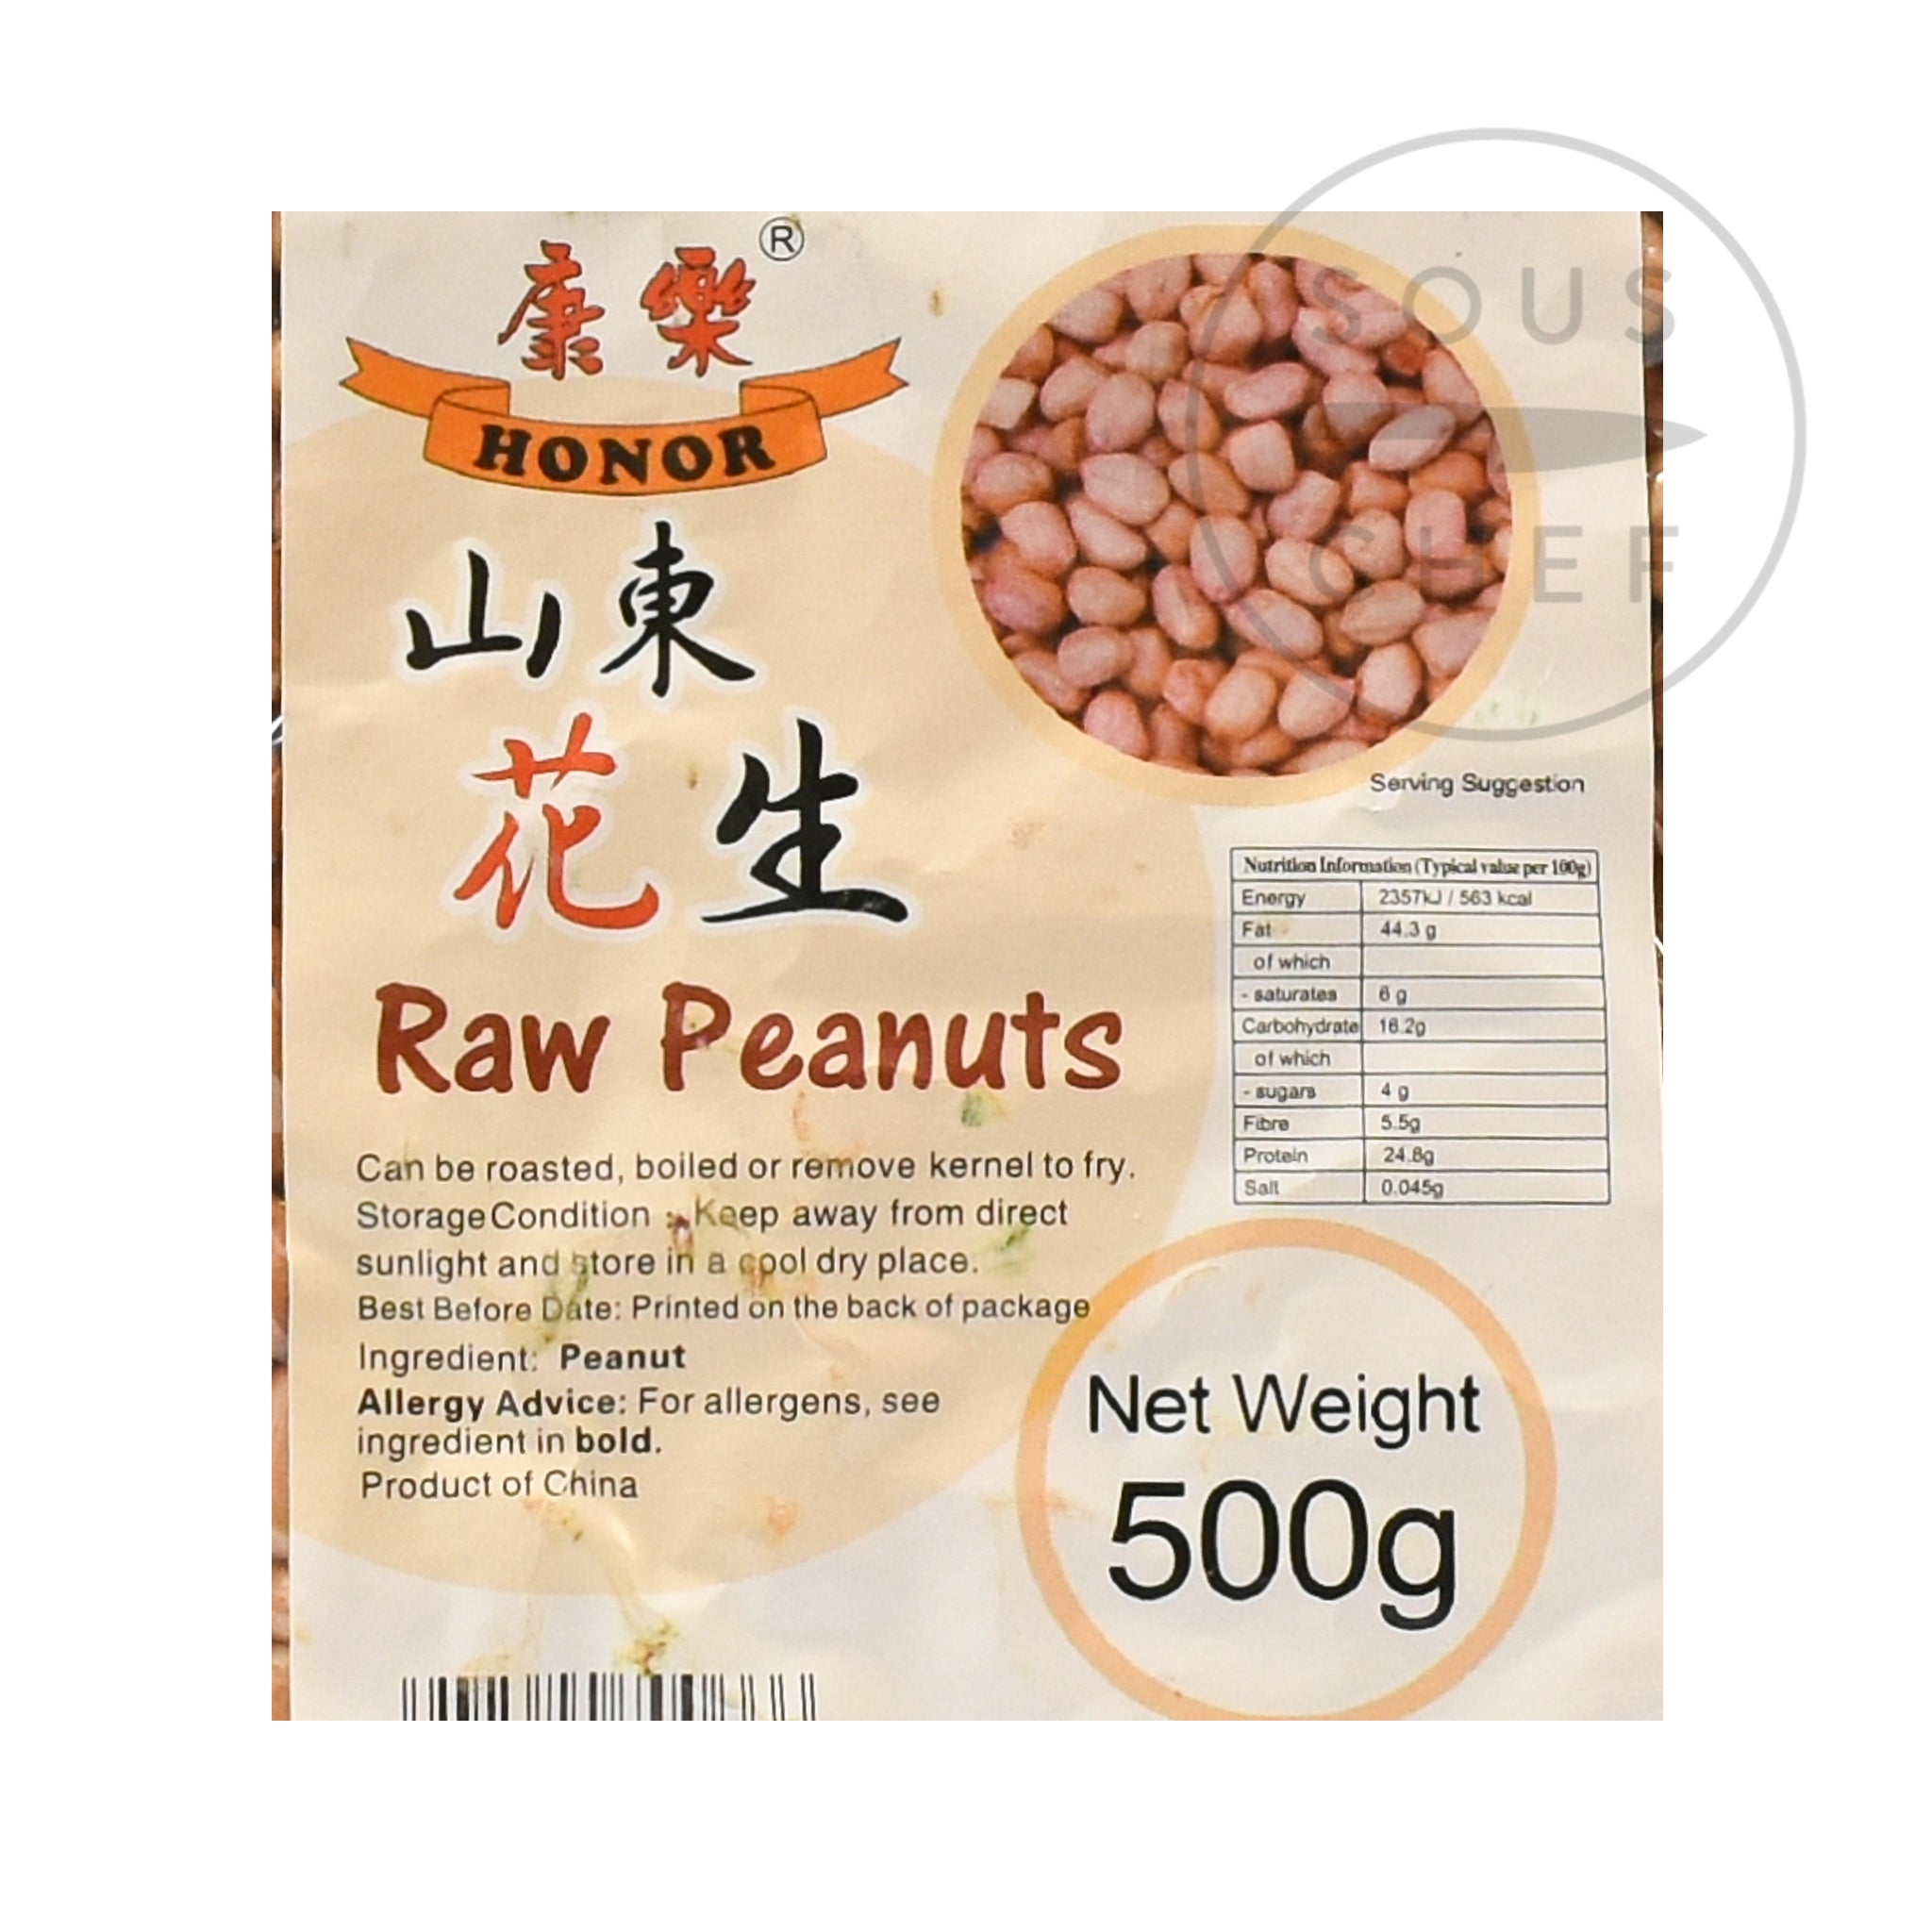 Unsalted Raw Peanuts 500g nutritional information ingredients